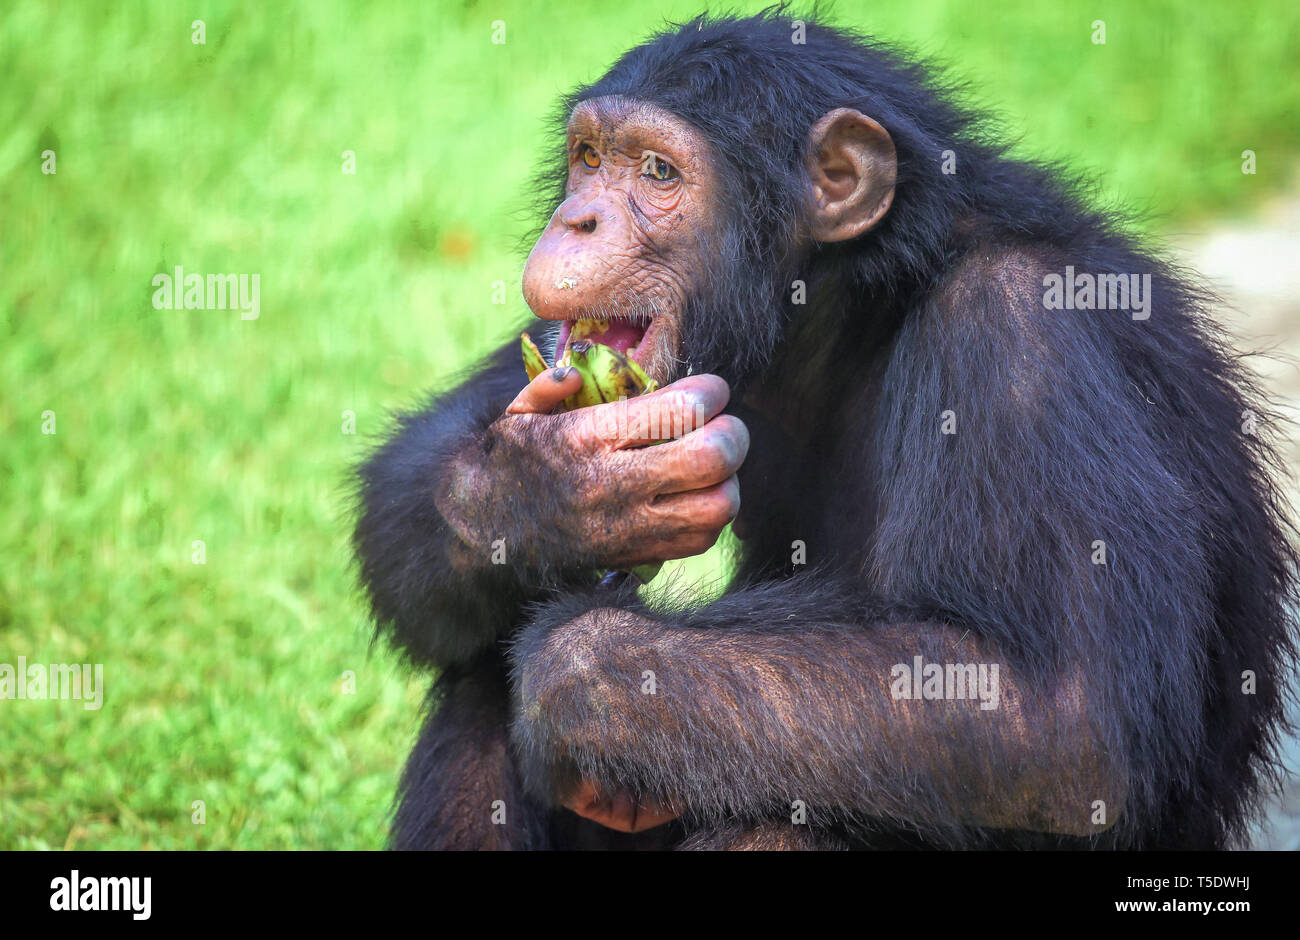 Chimpanzee at an Indian wildlife sanctuary in close up view eating banana Stock Photo